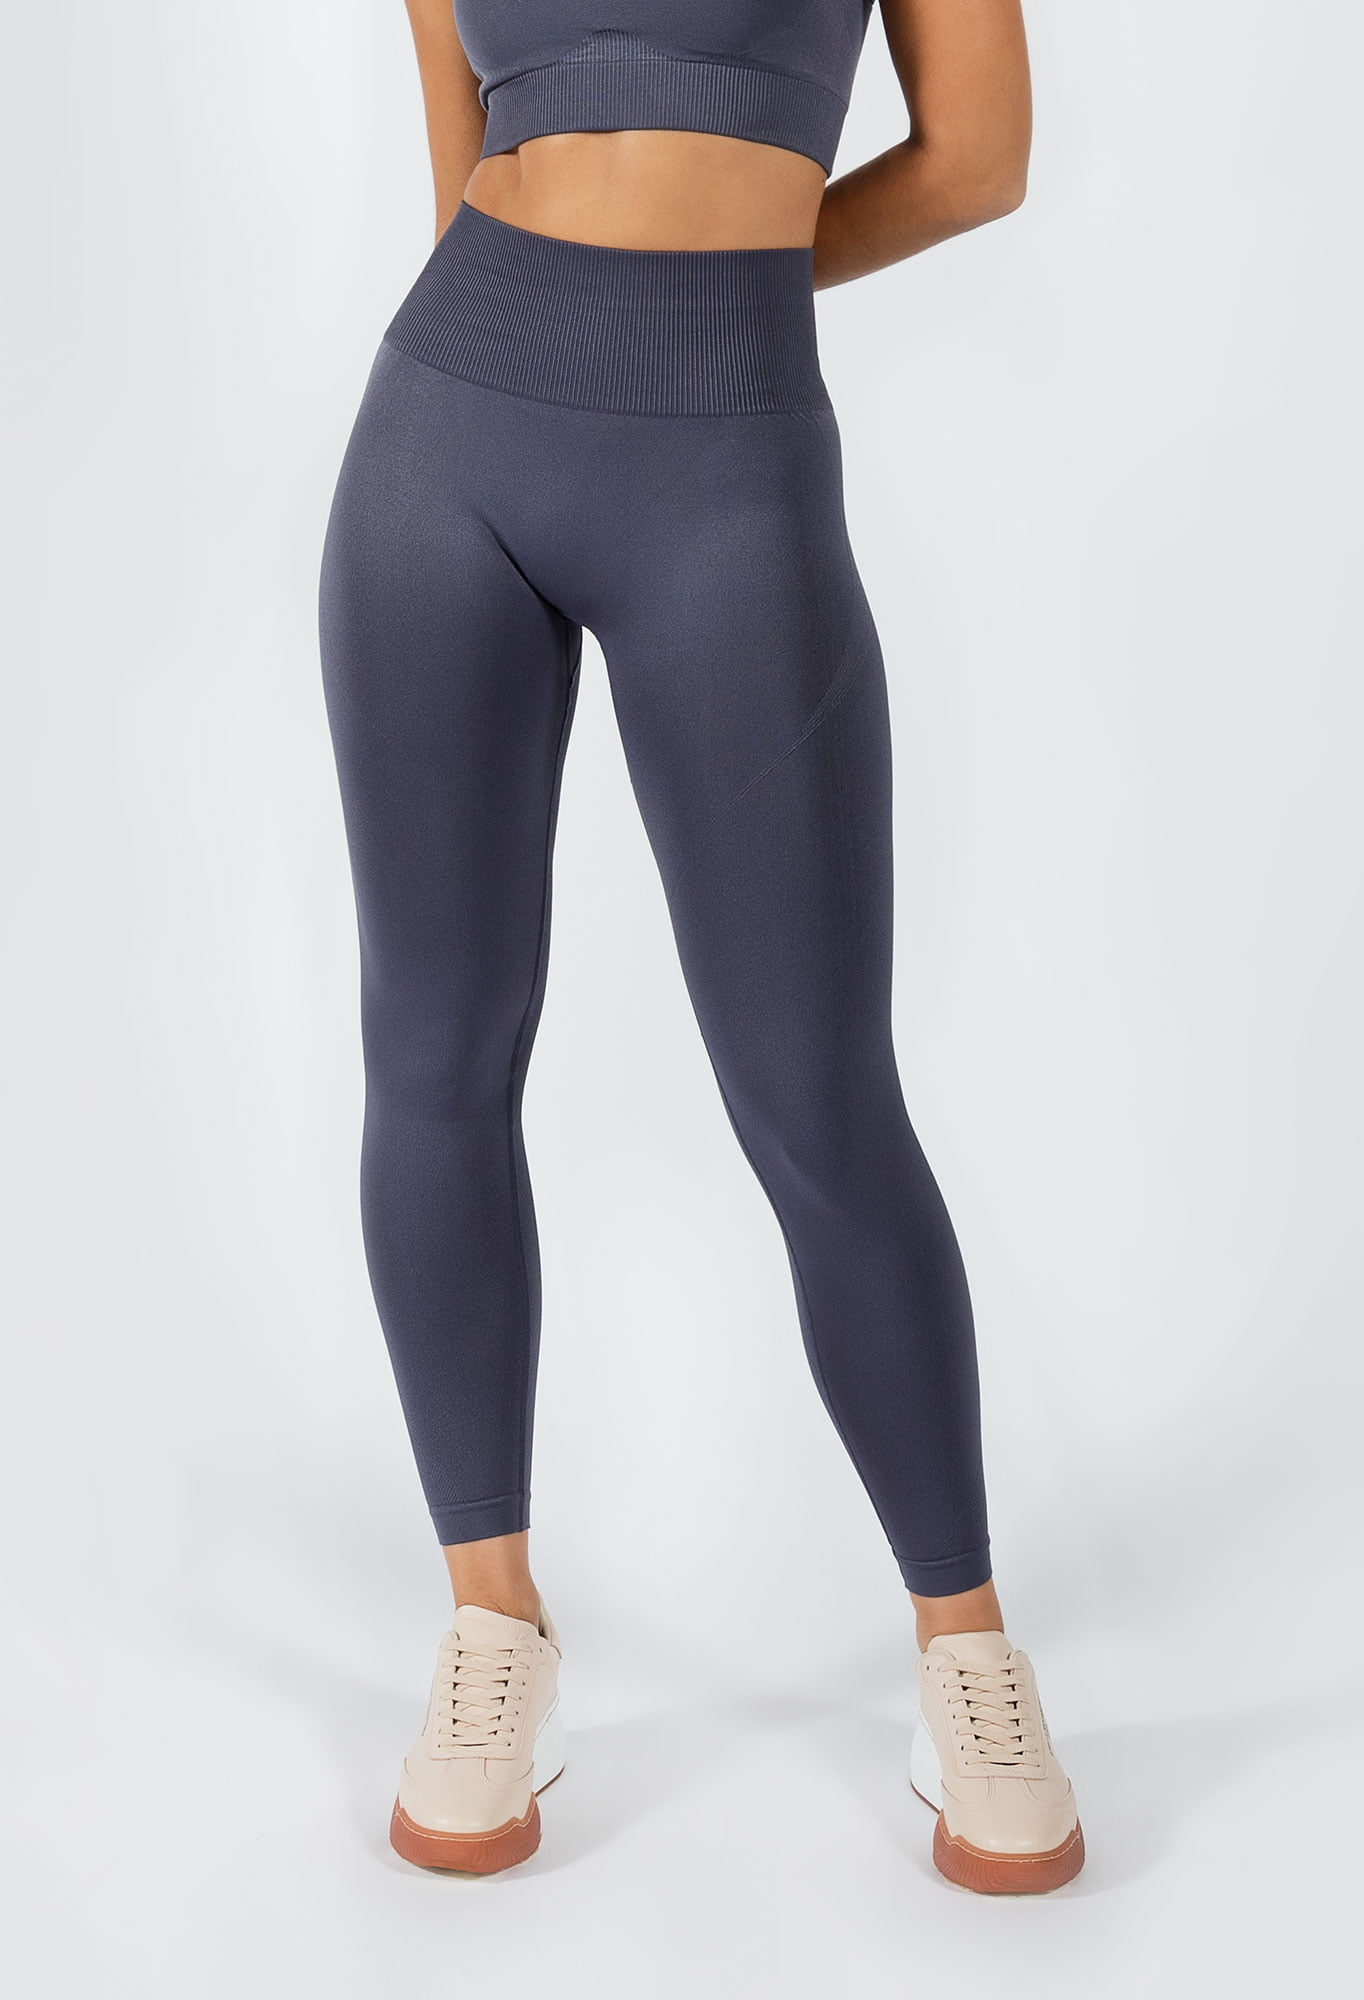 Muki women's yoga pants in grey colour